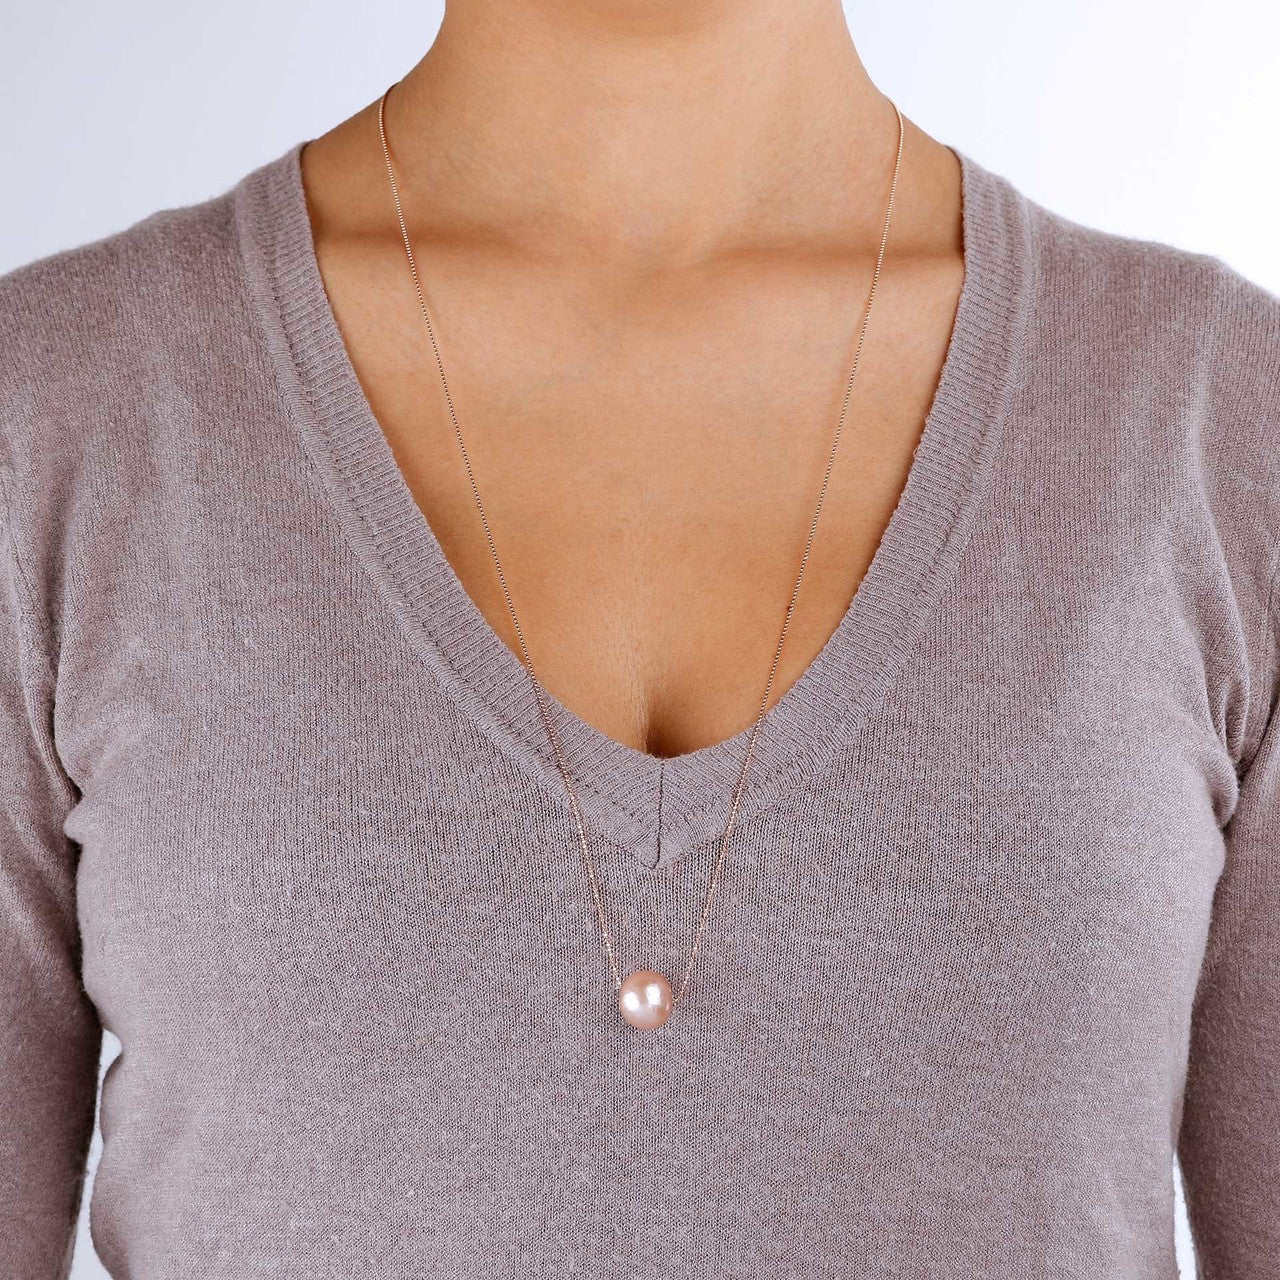 worn Pearl slide necklace